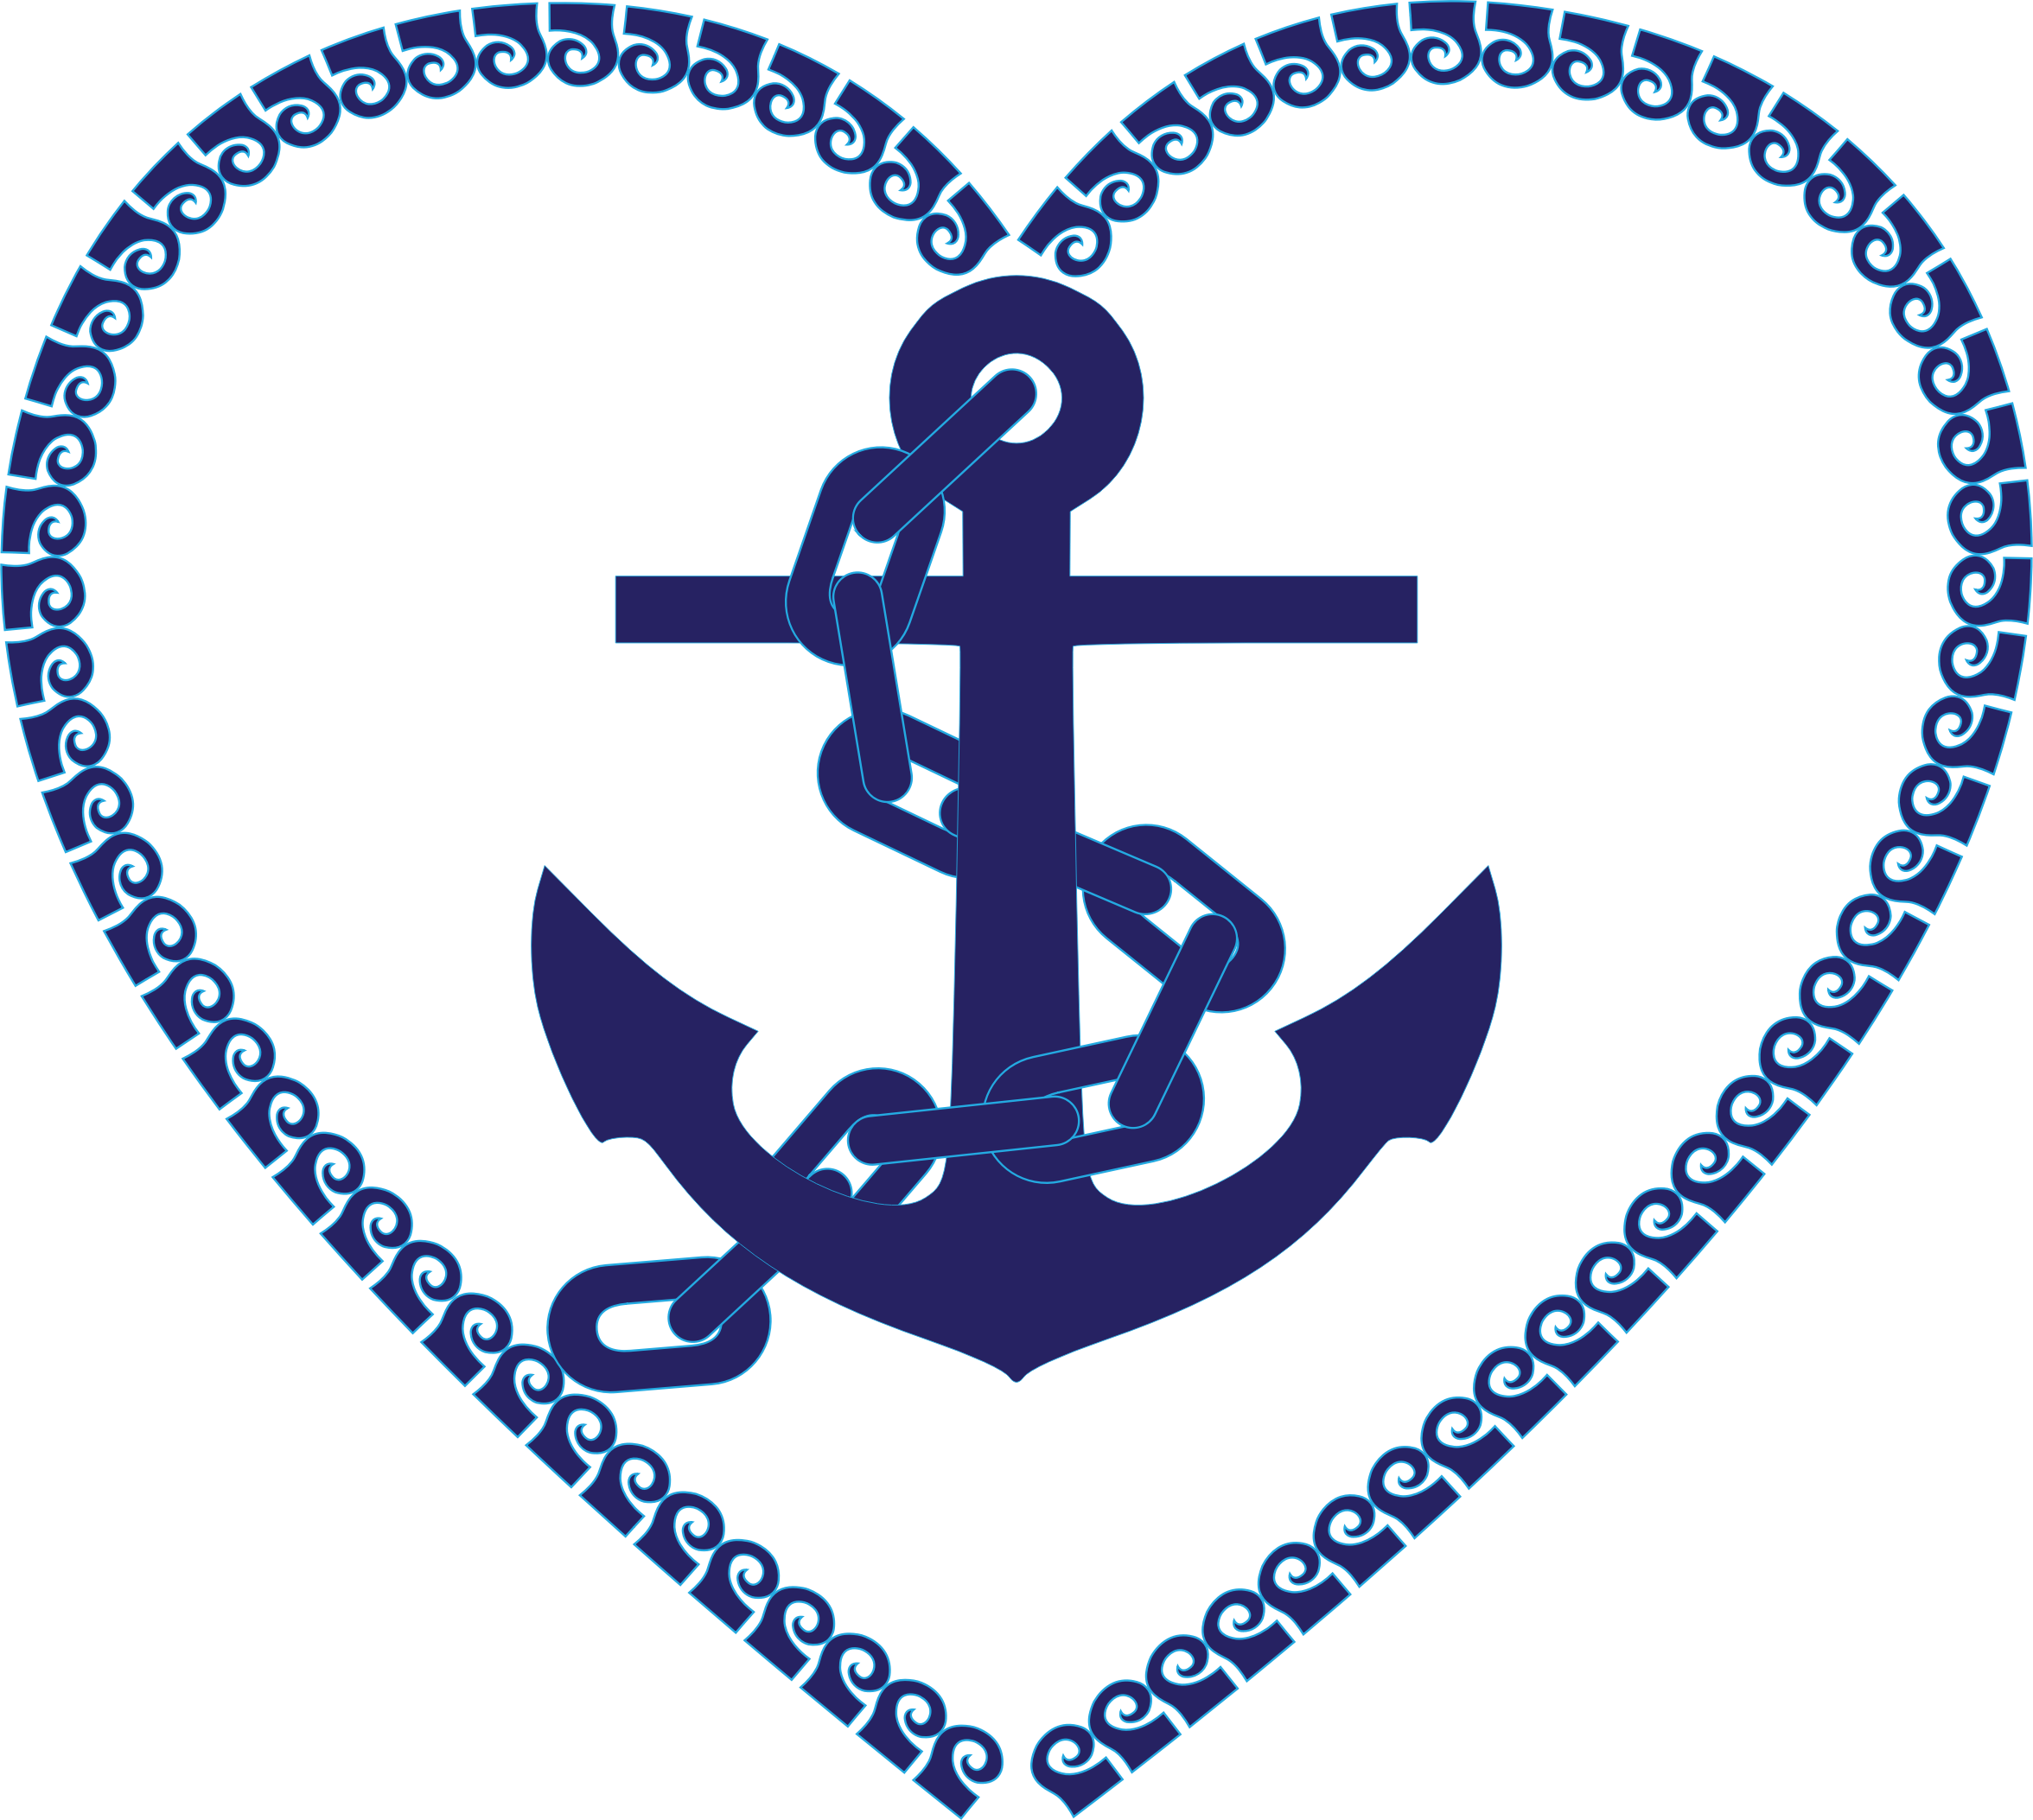 Anchor and chain clipart clip black and white download Nautical Anchor Heart Clip Art Free | Clipart - Nautical Heart ... clip black and white download